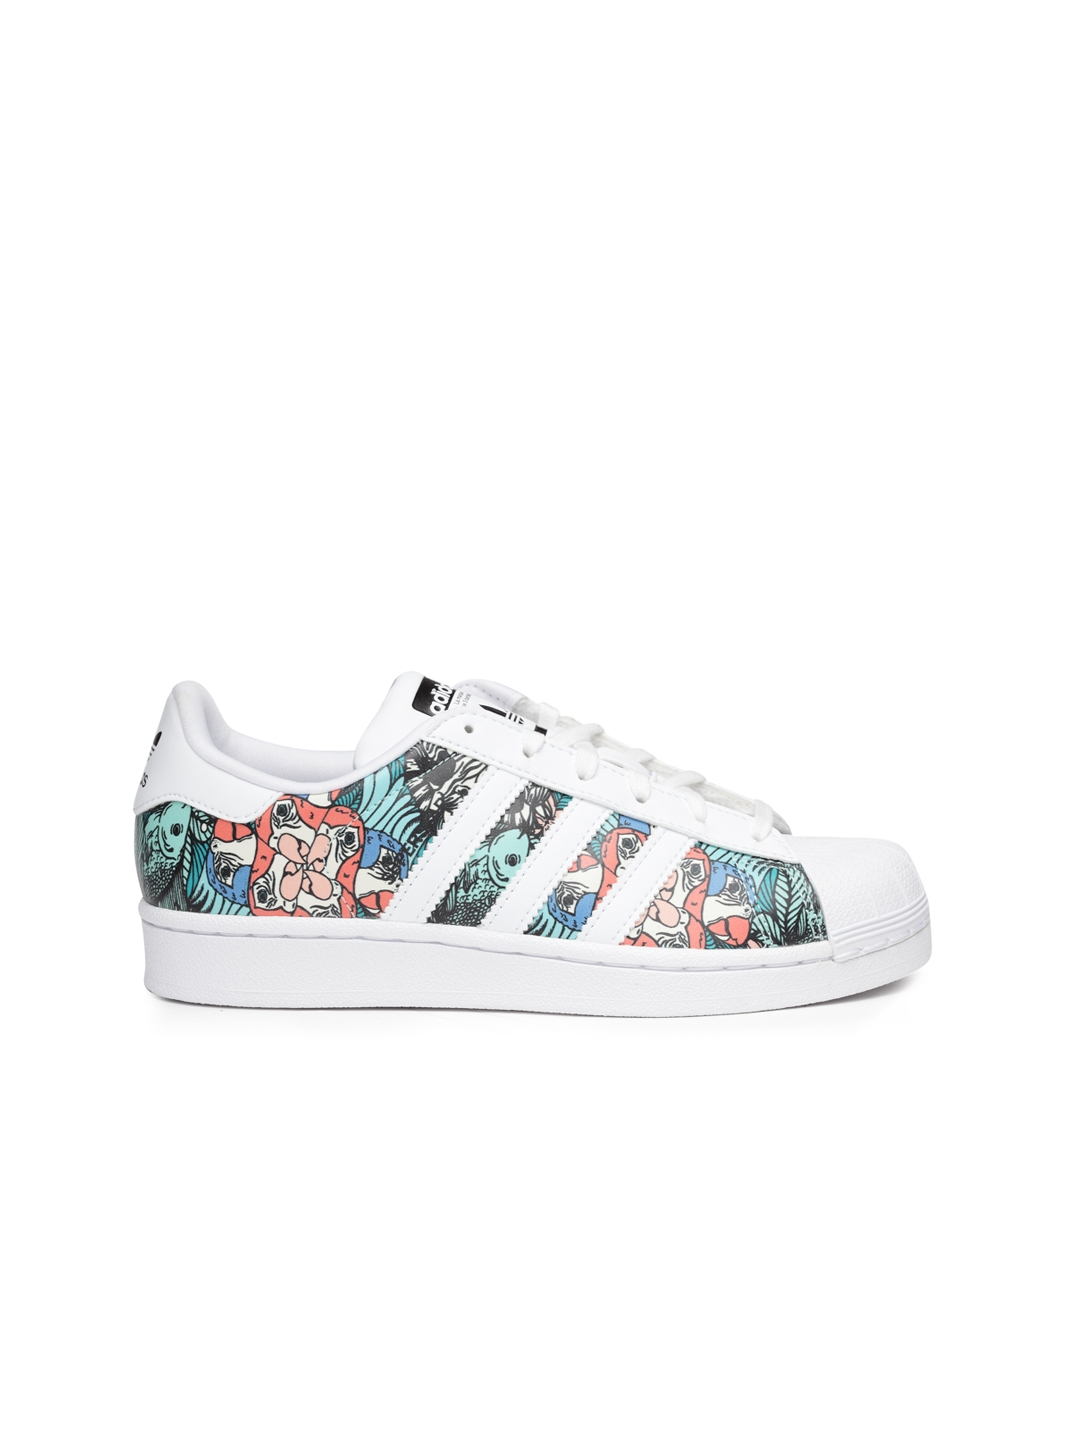 5df251c64d60 Adidas Originals Kids White   Sea Green Superstar J Printed Sneakers